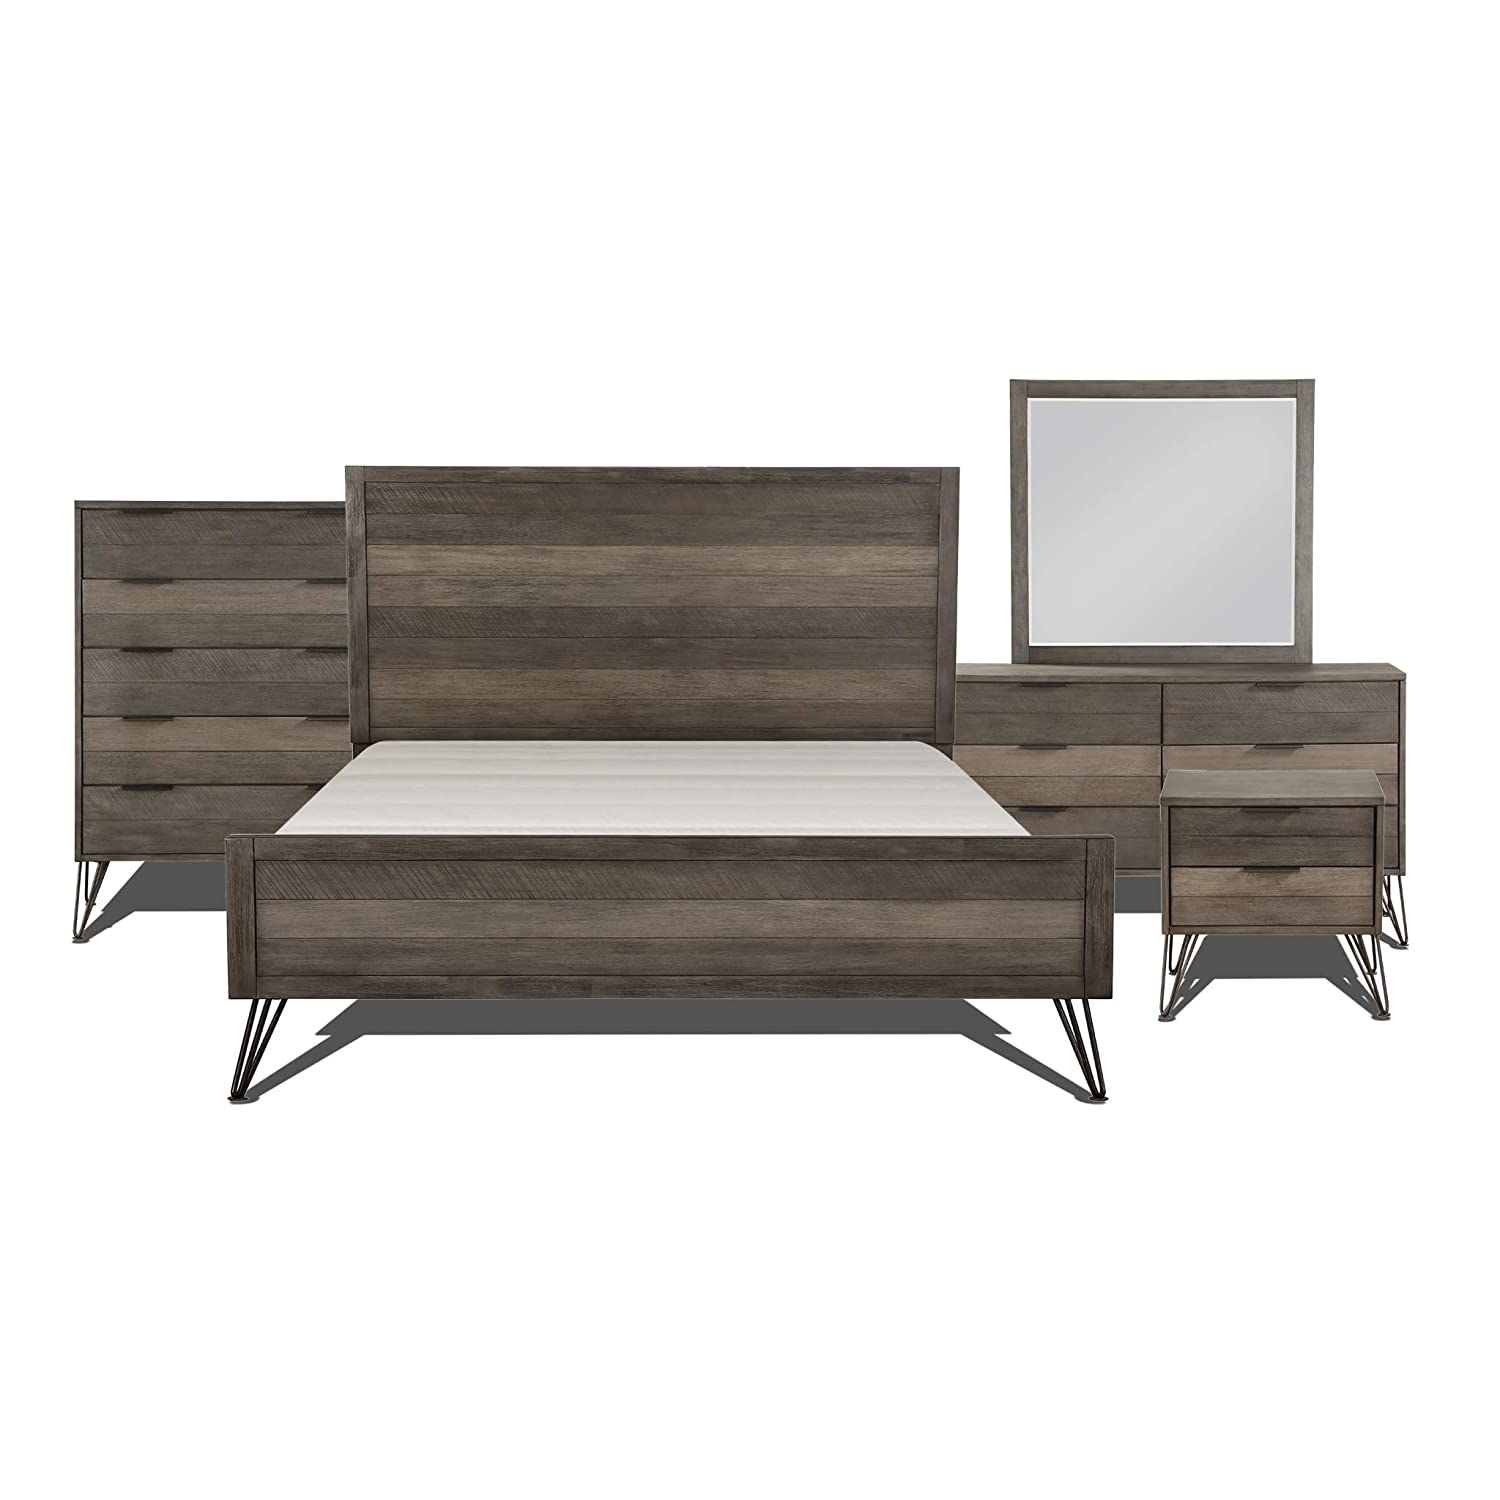 Lexicon Bedroom 5-Piece Set, King, Gray